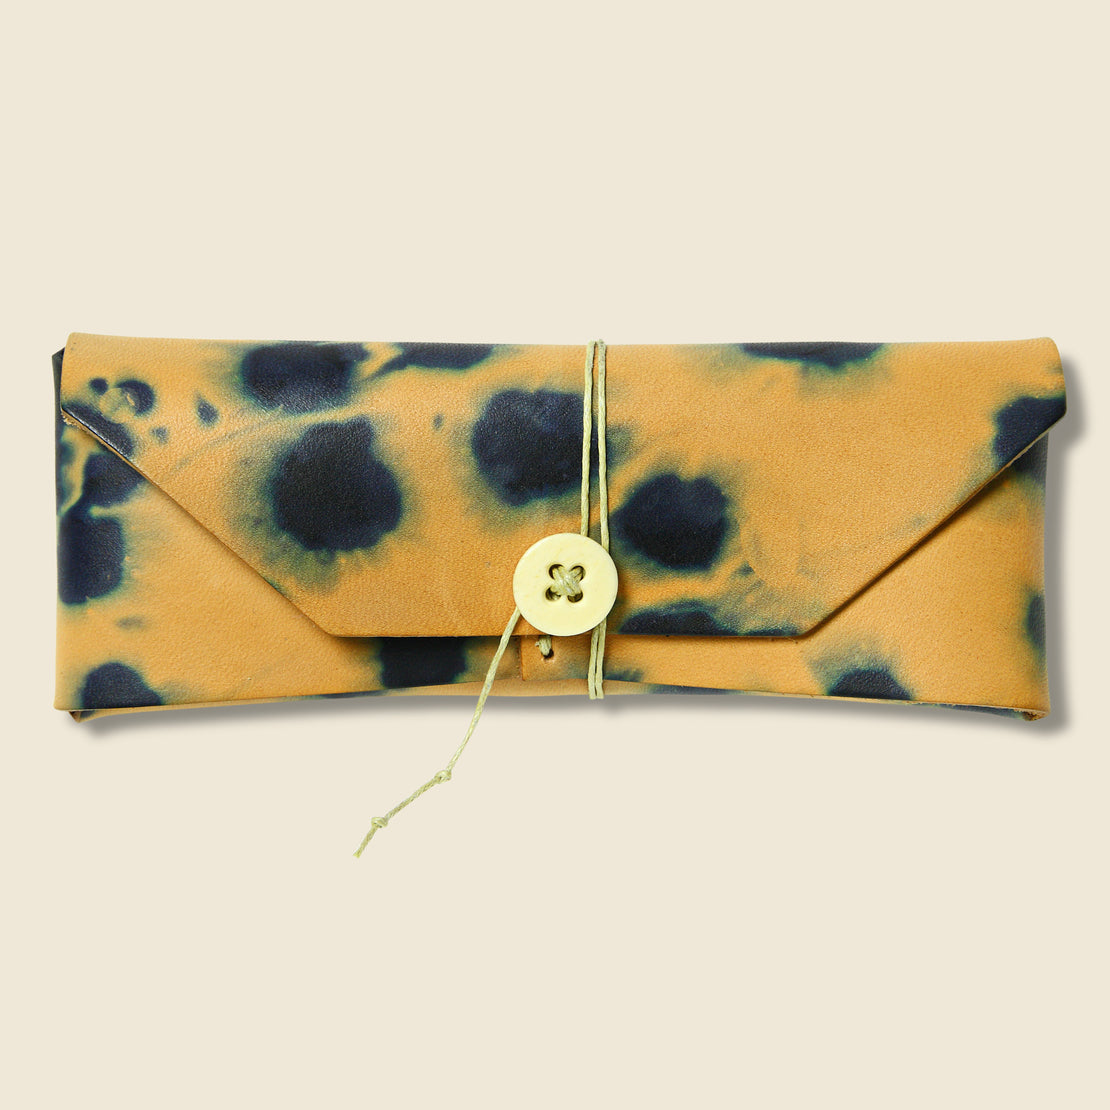 Made Solid Eyeglass Case - Indigo Tie Dye